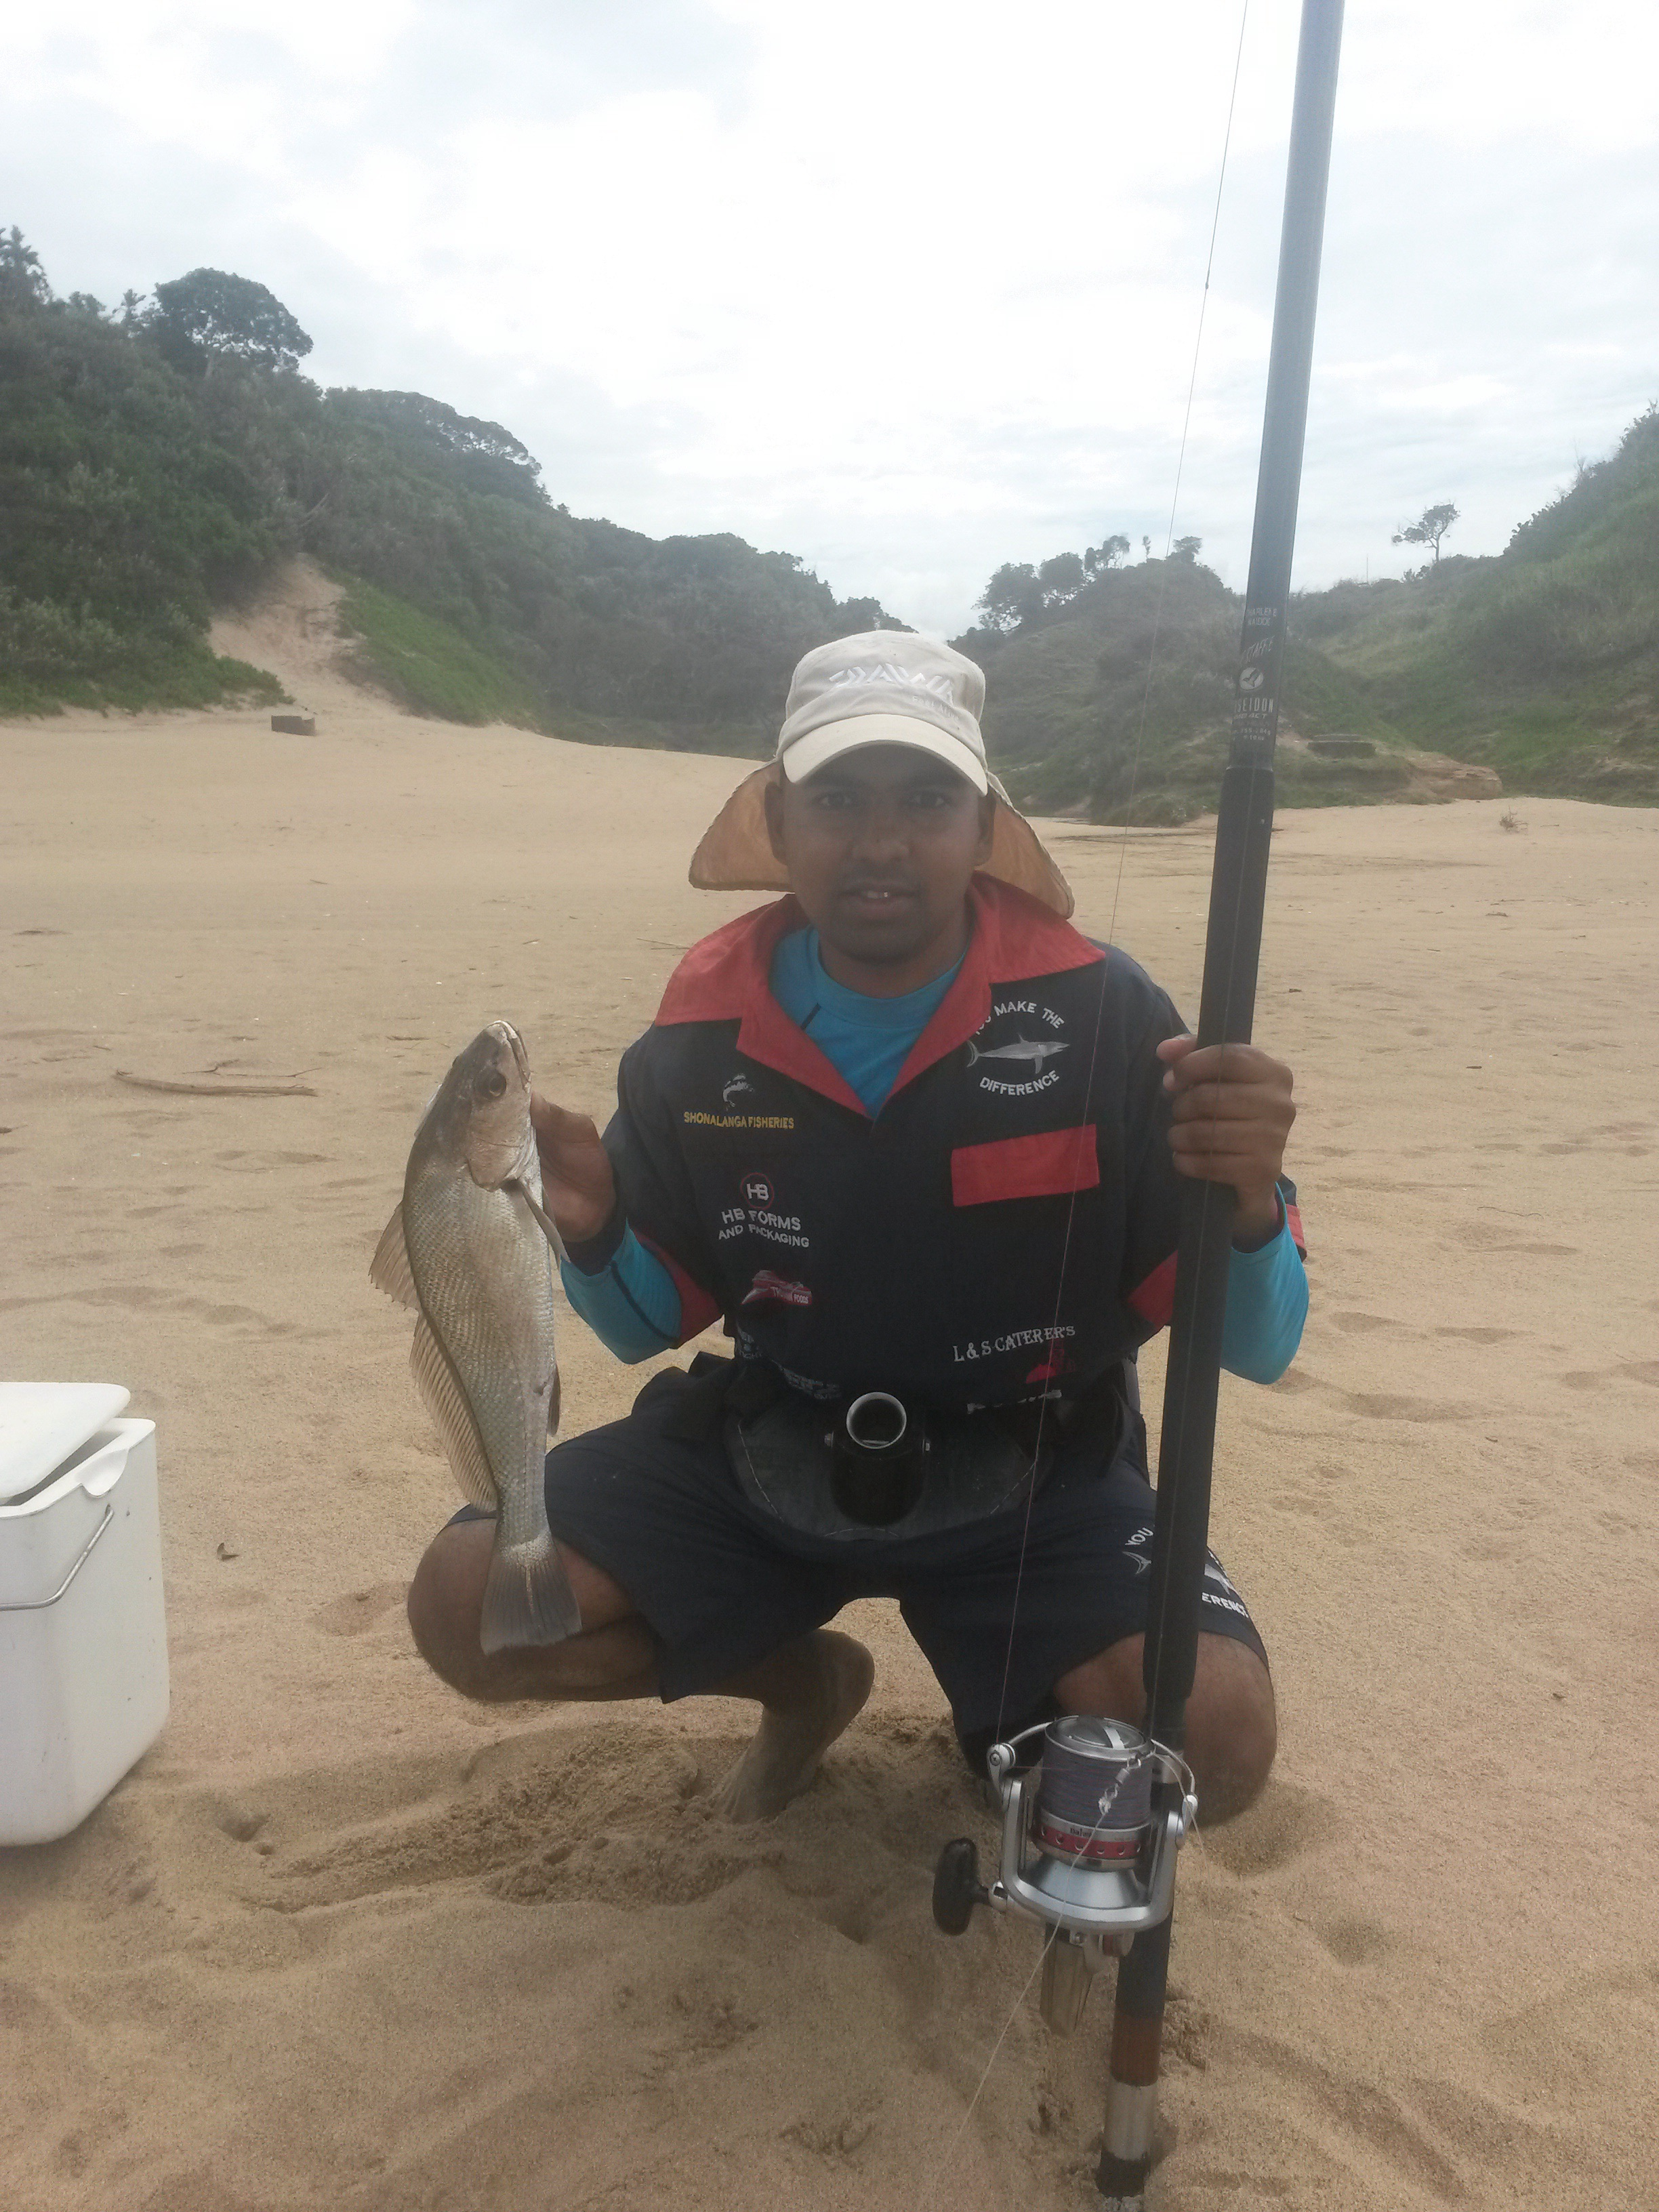 Caught at port durnford used grinder for da first time felt good image